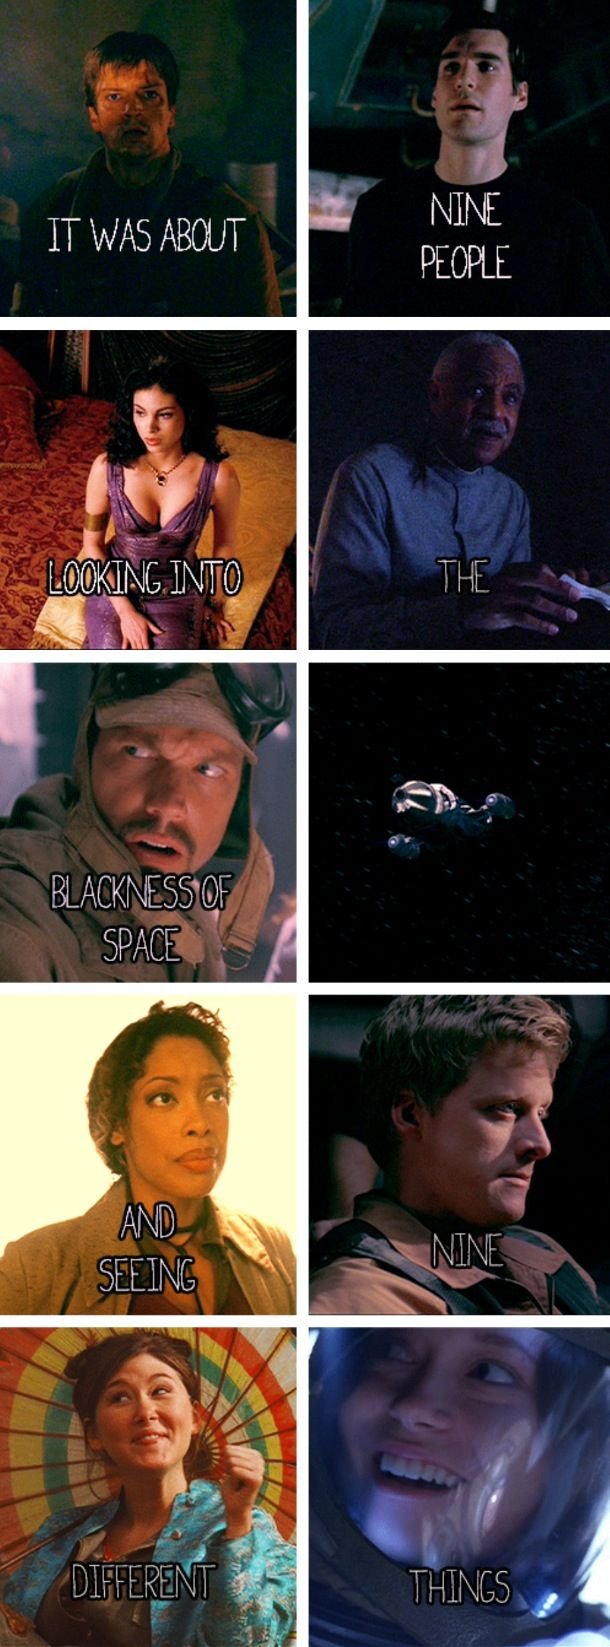 """It was about nine people looking into the blackness of space and seeing nine different things.""   Firefly! River, Zoey, Mal, Simon, Wash, Kalee, Anora, Book, Jayne! <3"